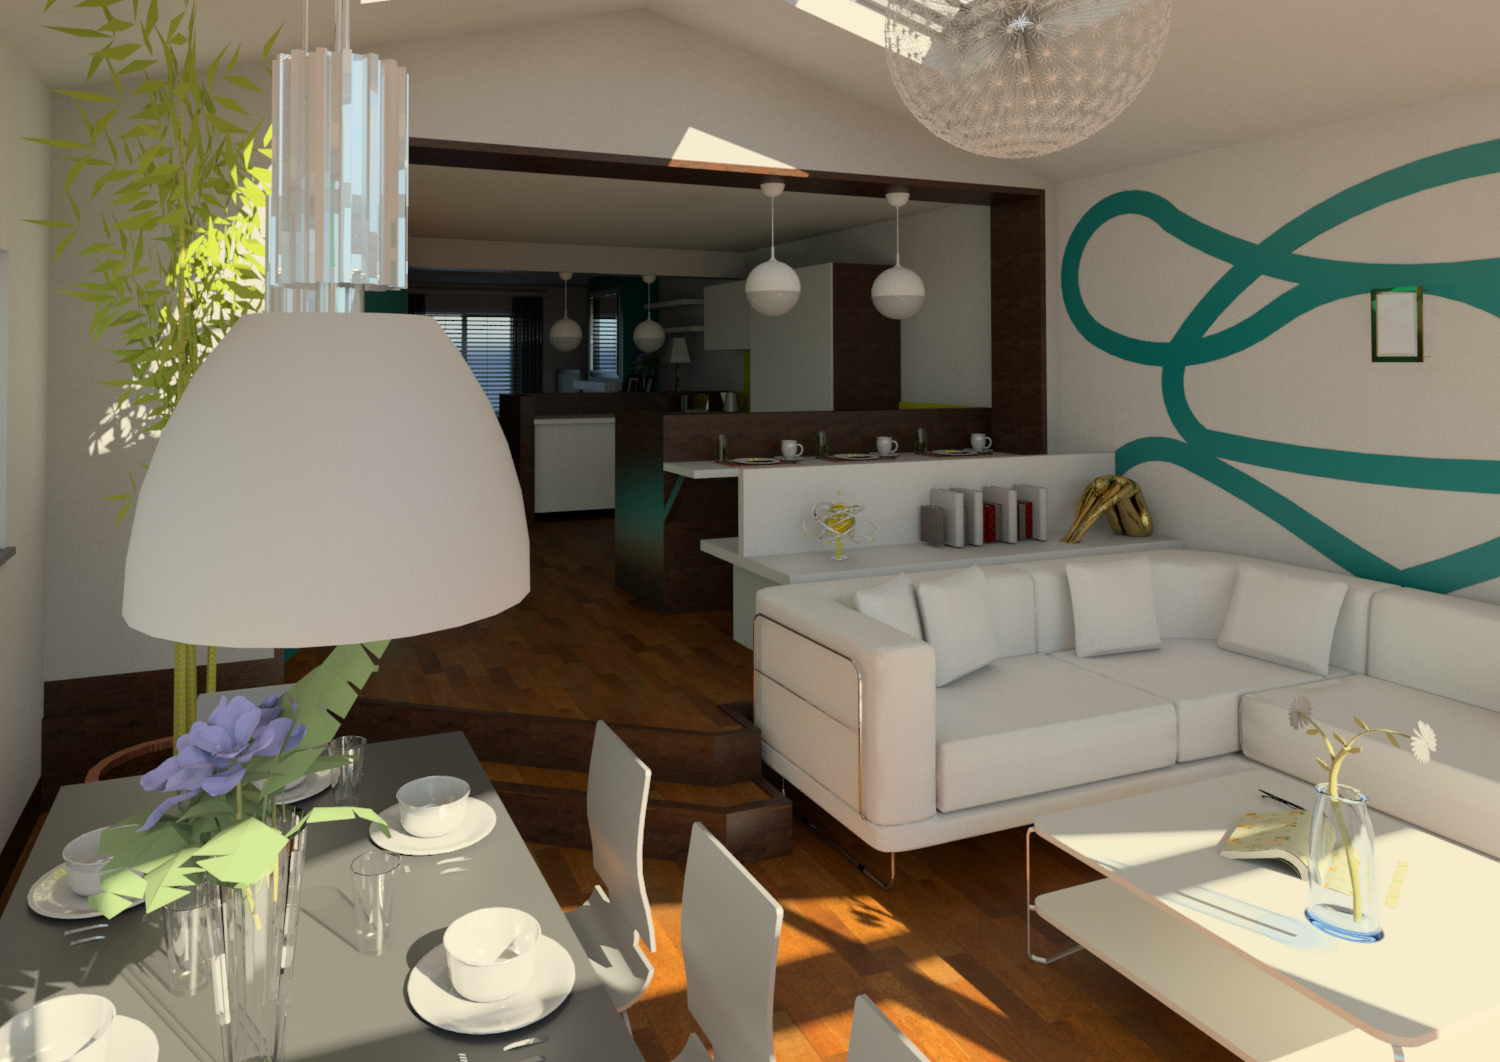 For_Renders.rvt_2015-Apr-08_01-39-47PM-000_From_ext._up_steps.png